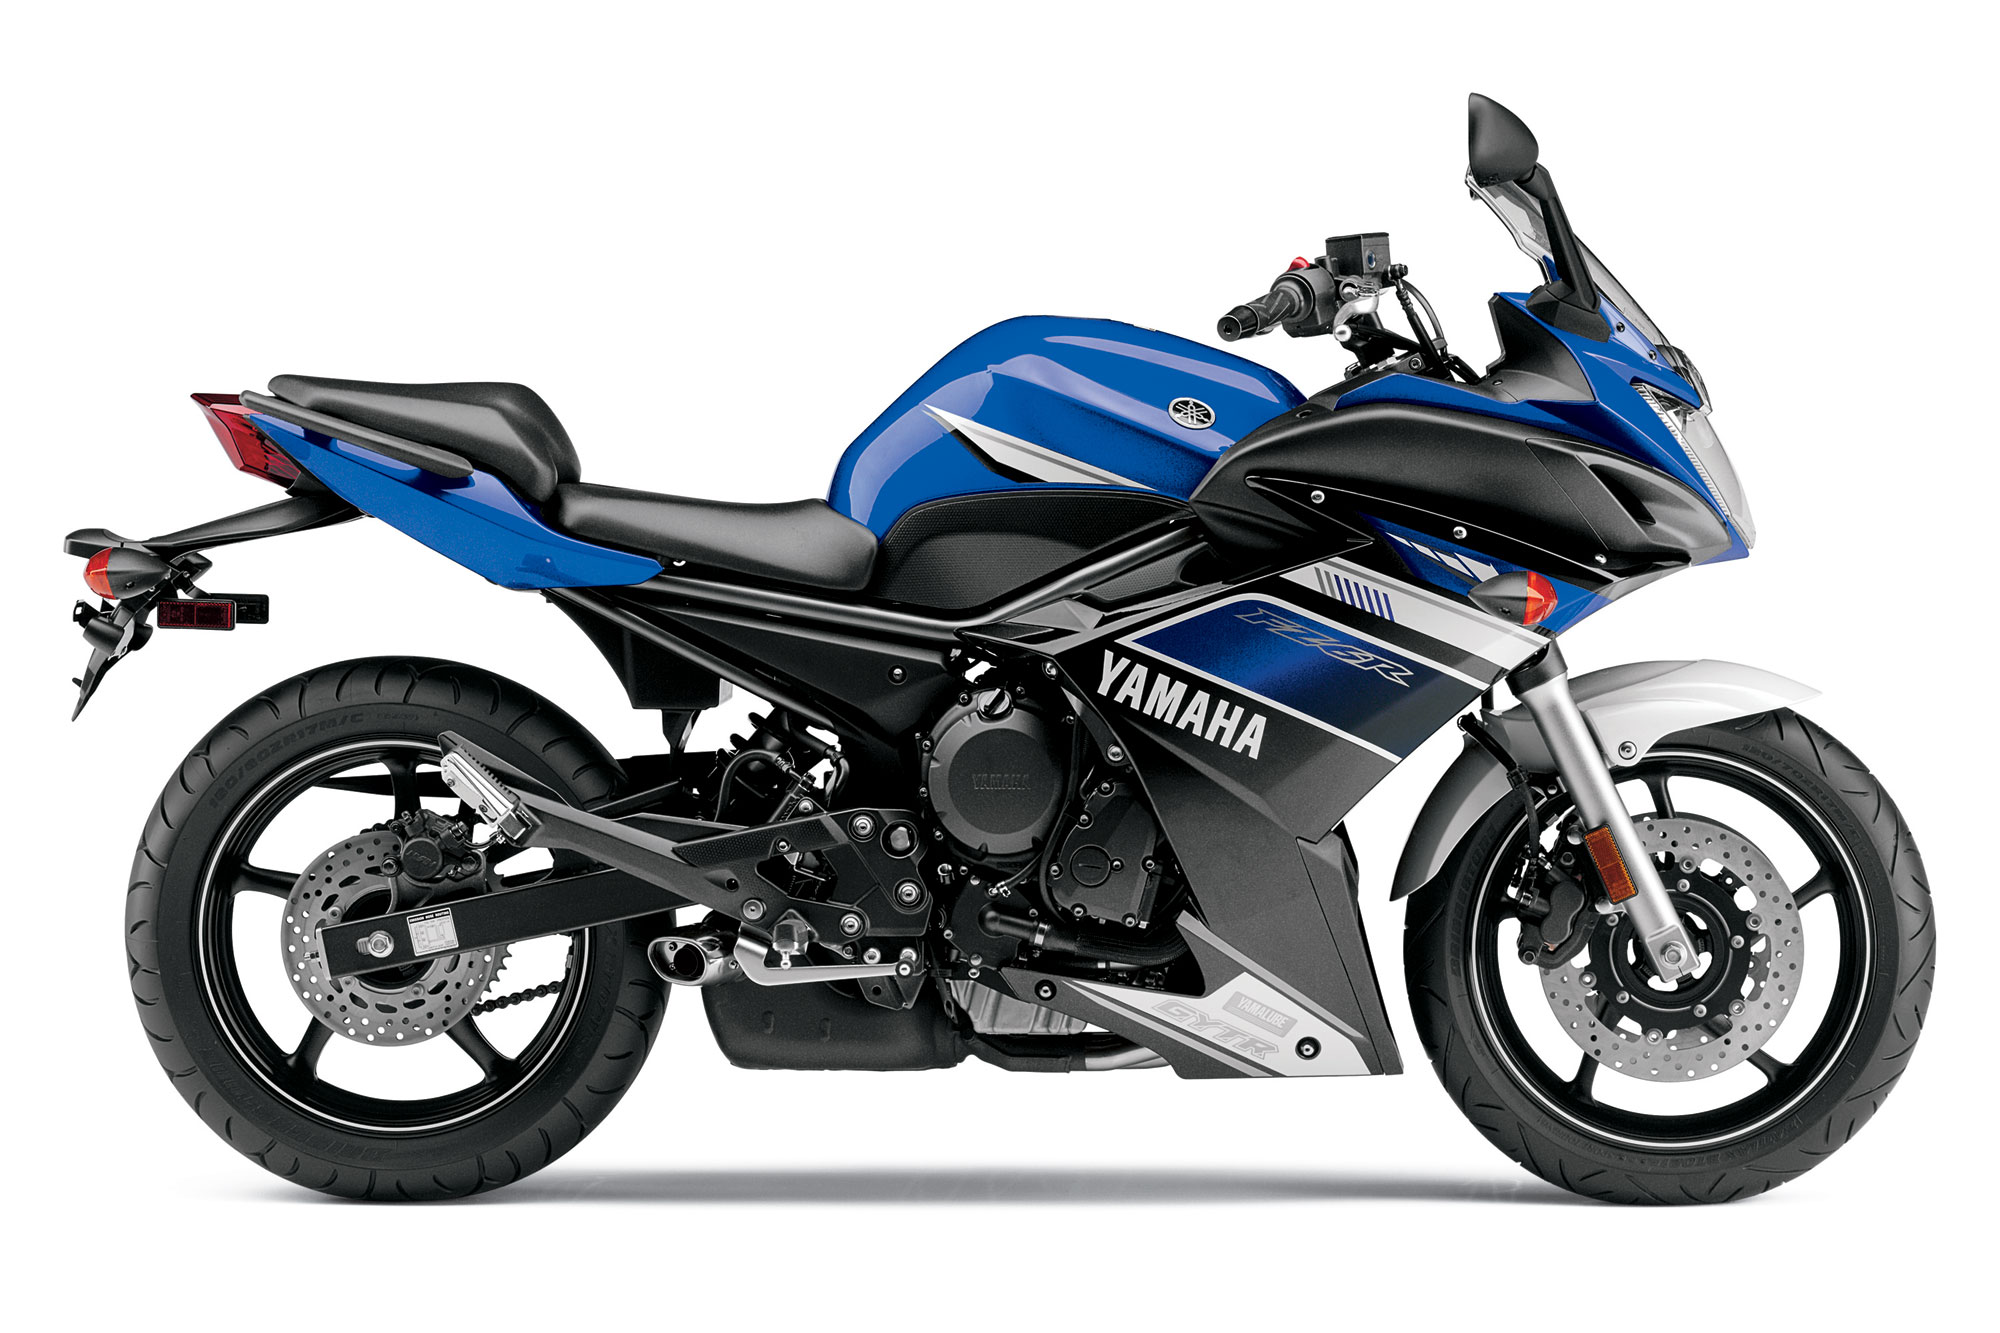 2013 Yamaha Fz6r Review